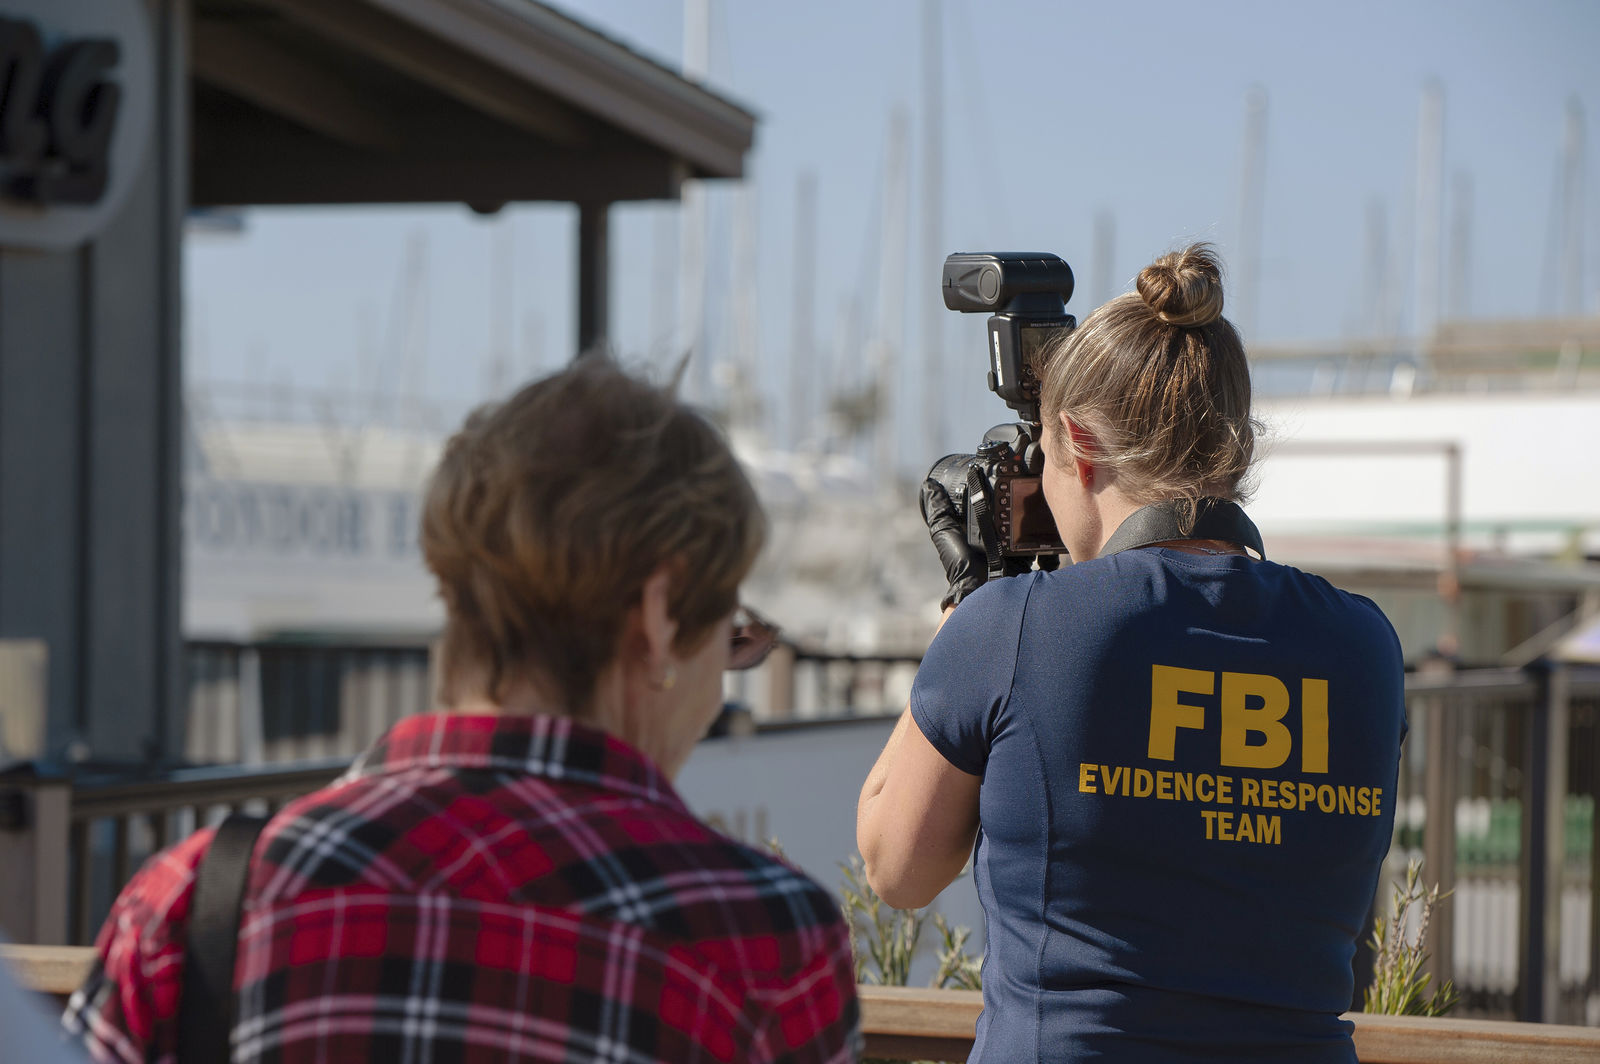 An FBI photographer takes evidence pictures as authorities search the Truth Aquatics' offices, the California company that owned the scuba diving boat that caught fire and killed dozens of people last week, on the Santa Barbara Harbor in Santa Barbara, Calif., Sunday, Sept. 8, 2019. (AP Photo/ Christian Monterrosa)